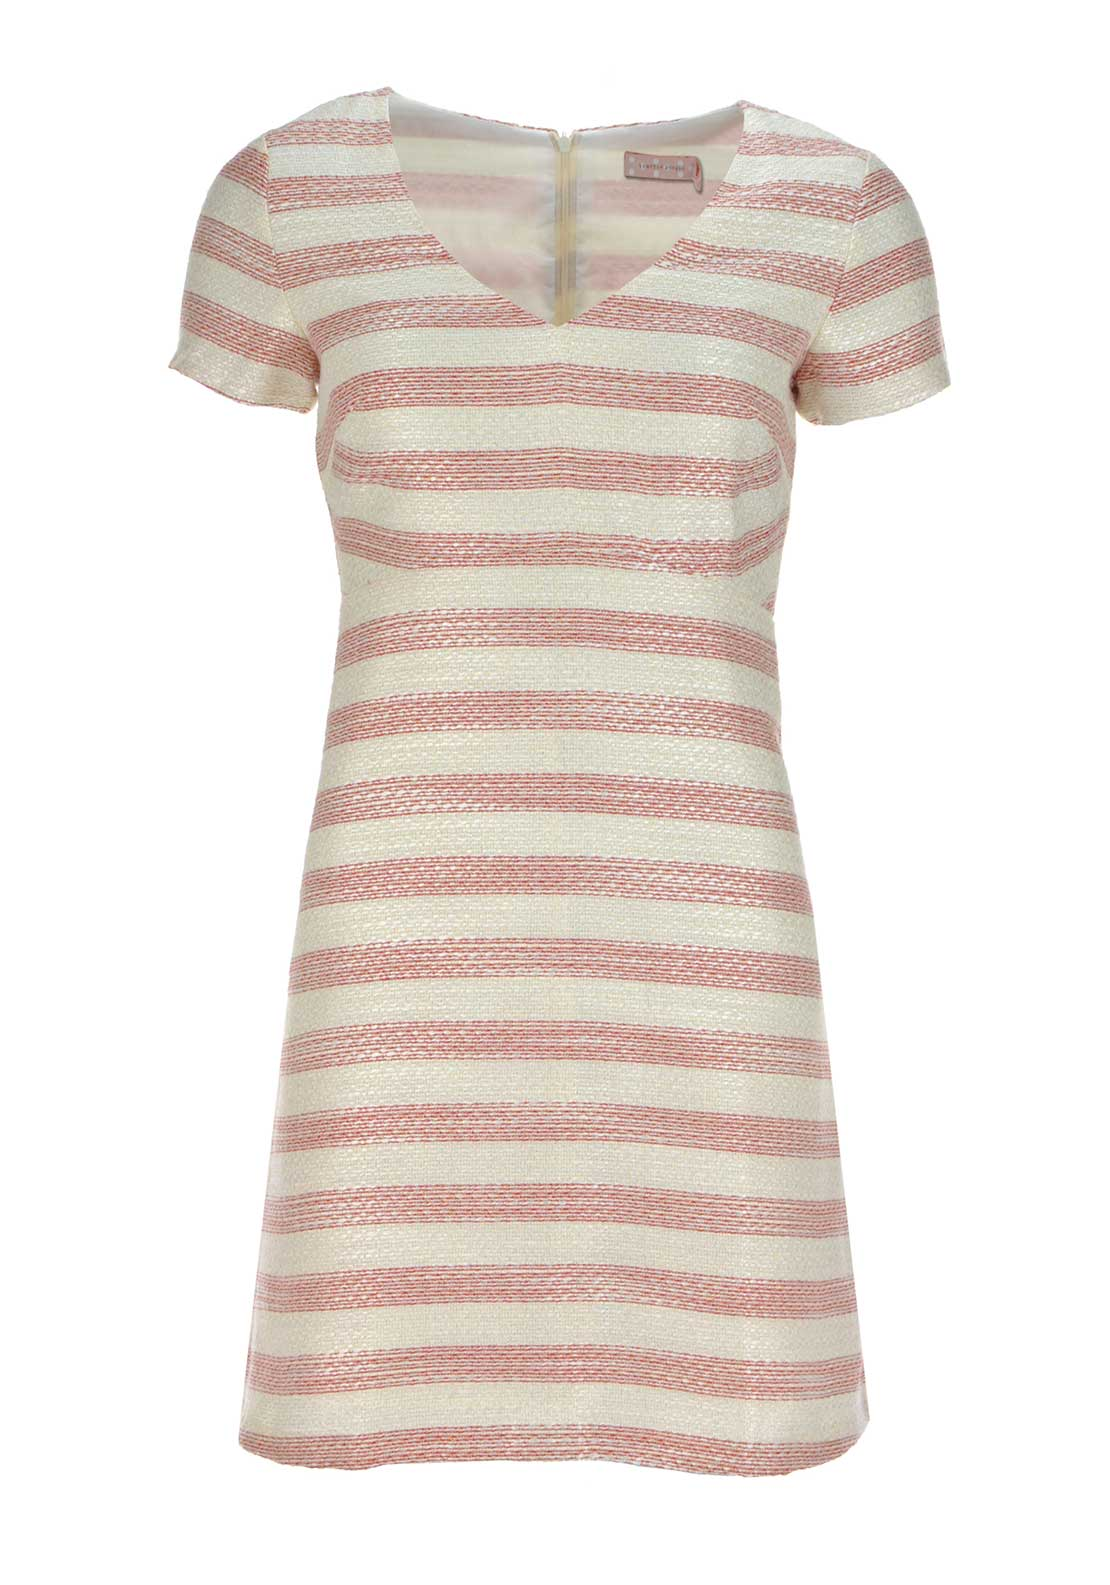 Traffic People Woven Striped A-Line Dress, Cream and Red